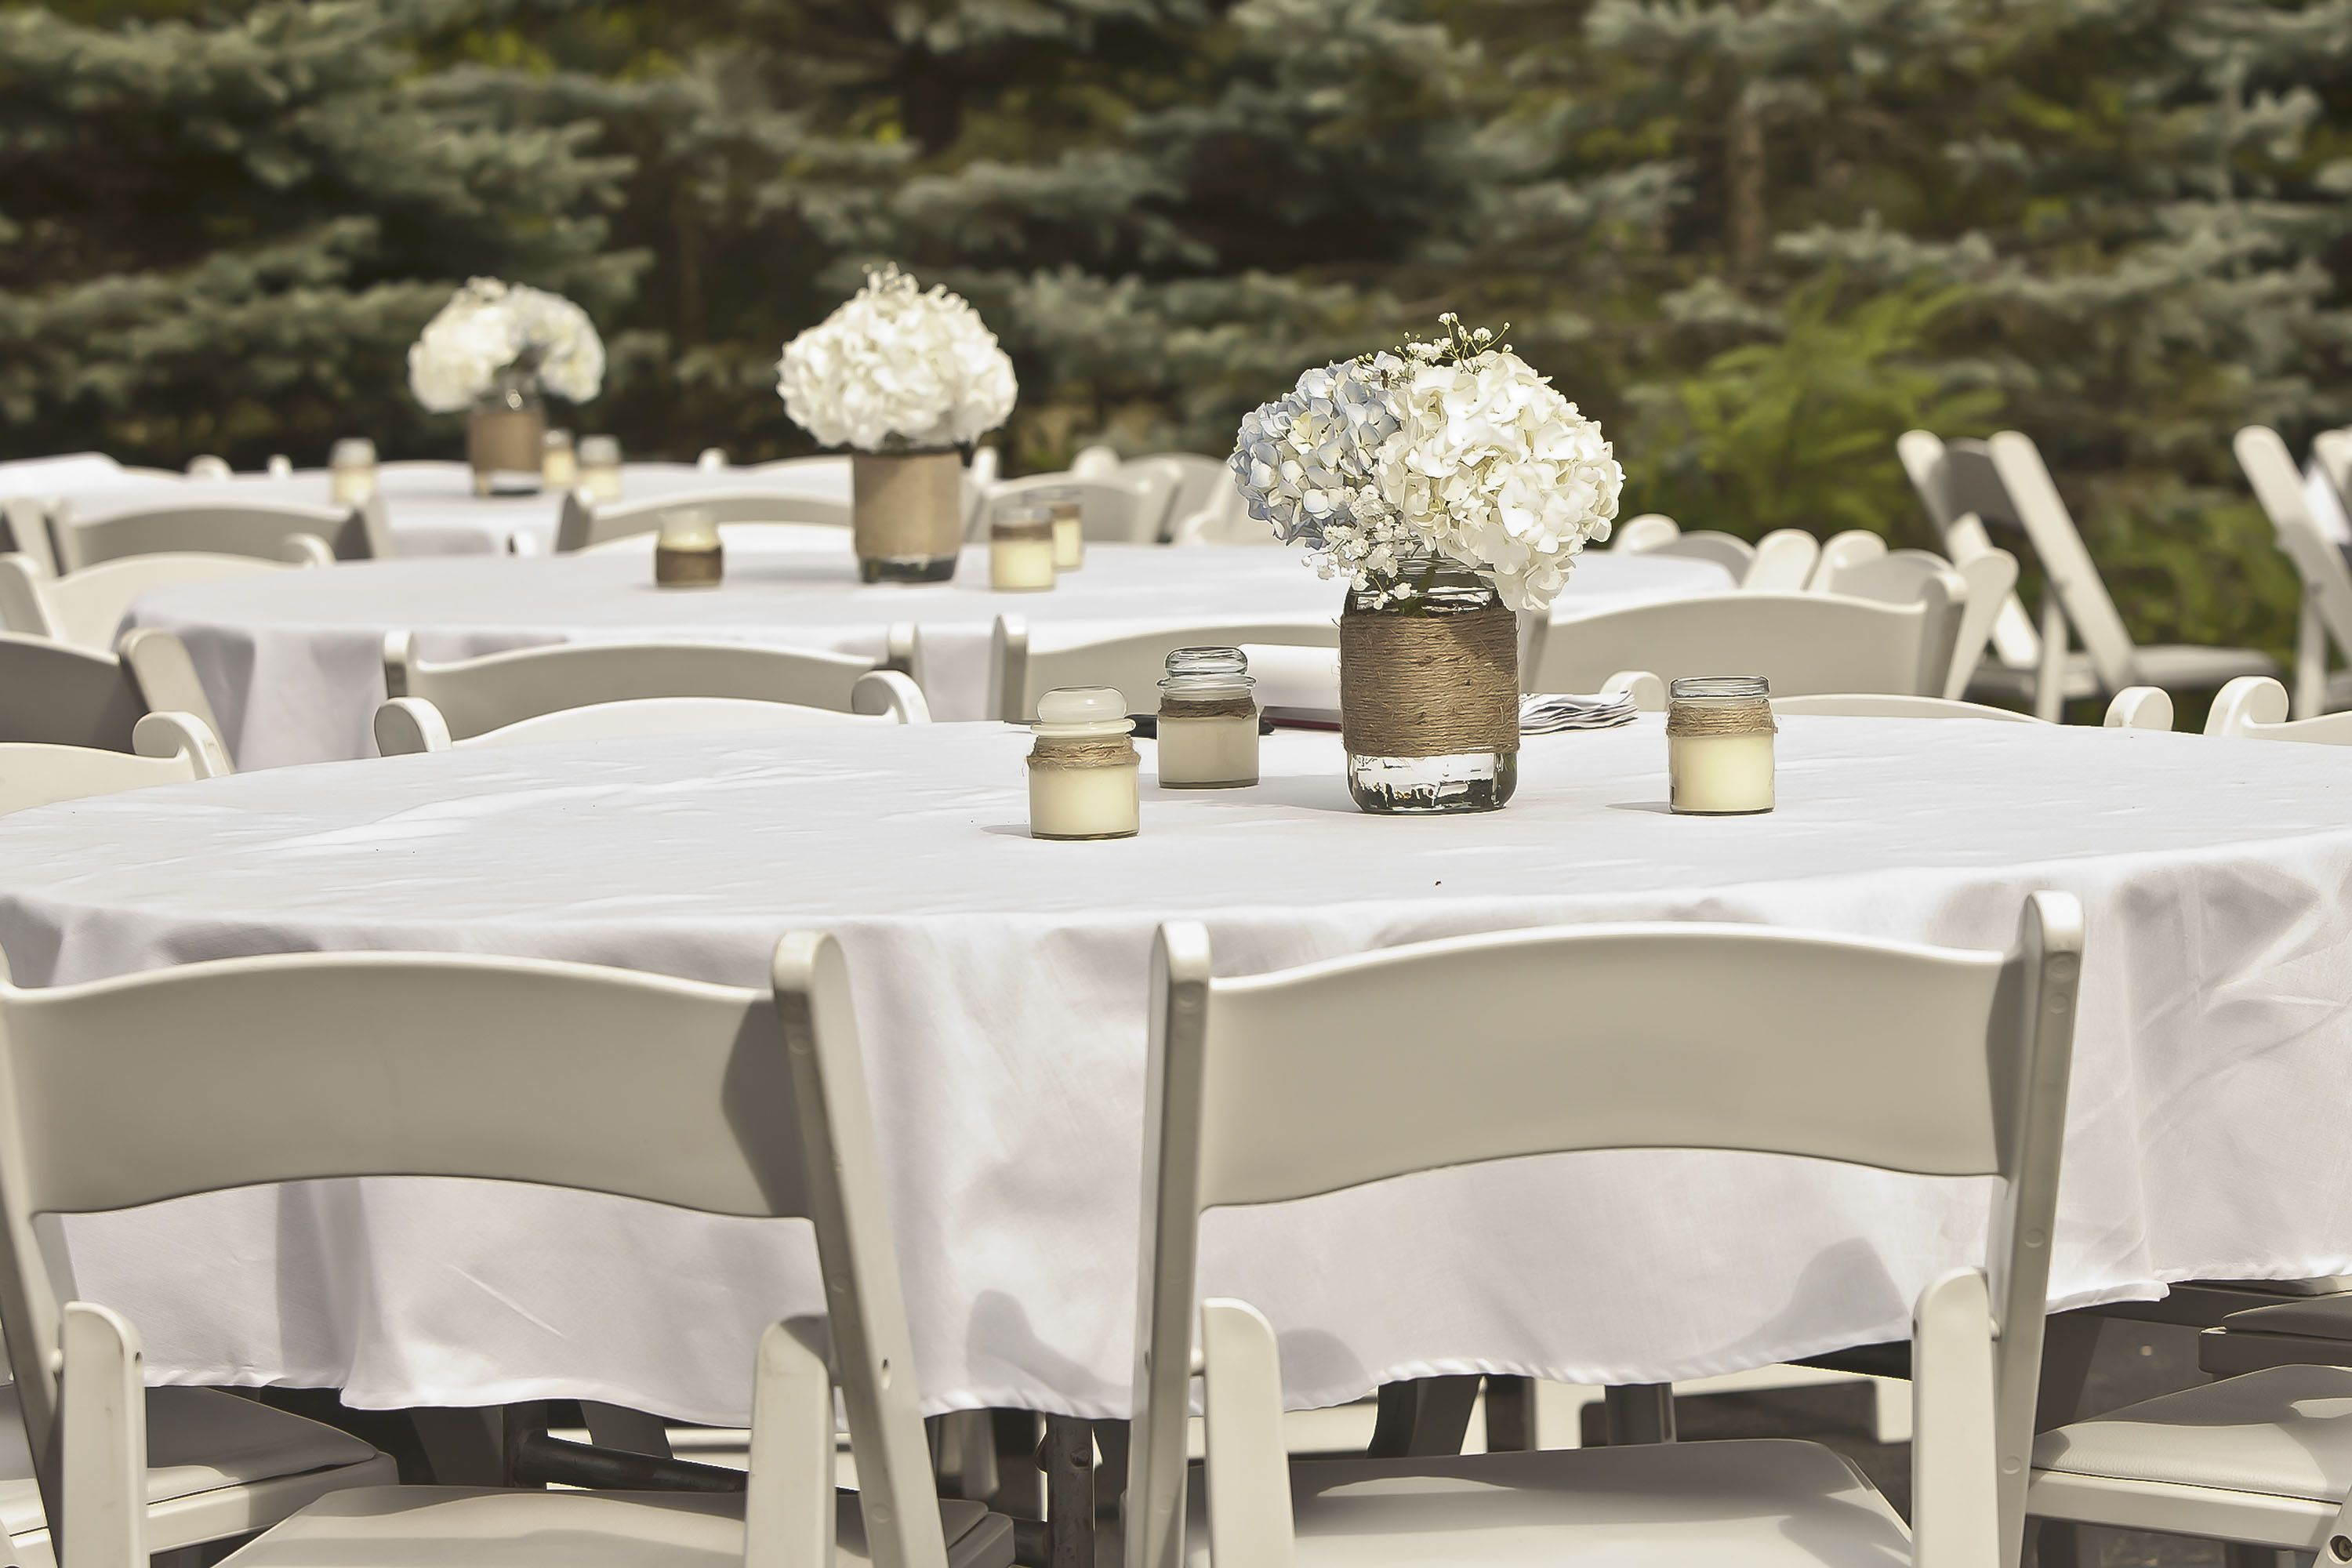 Ideas For Confirmation Party Centerpieces Ehow Com Confirmation Party Party Centerpieces Baptism Party Decorations